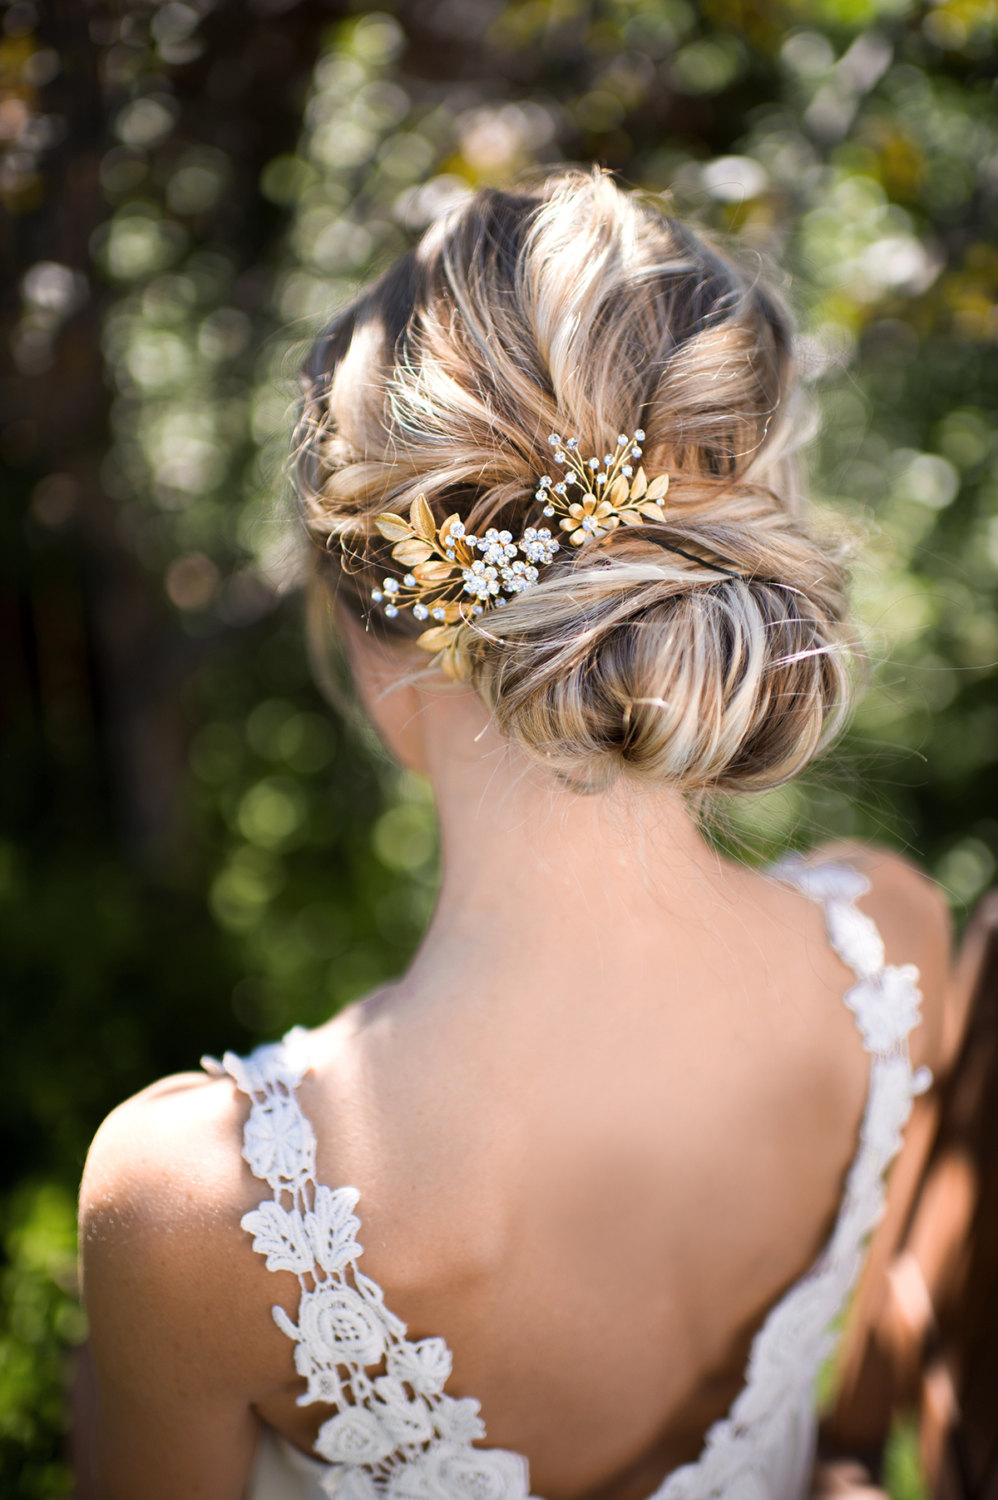 gold leaf hair accessory for weddings | lottie-da designs | http://emmalinebride.com/bride/gold-leaf-hair-accessory/